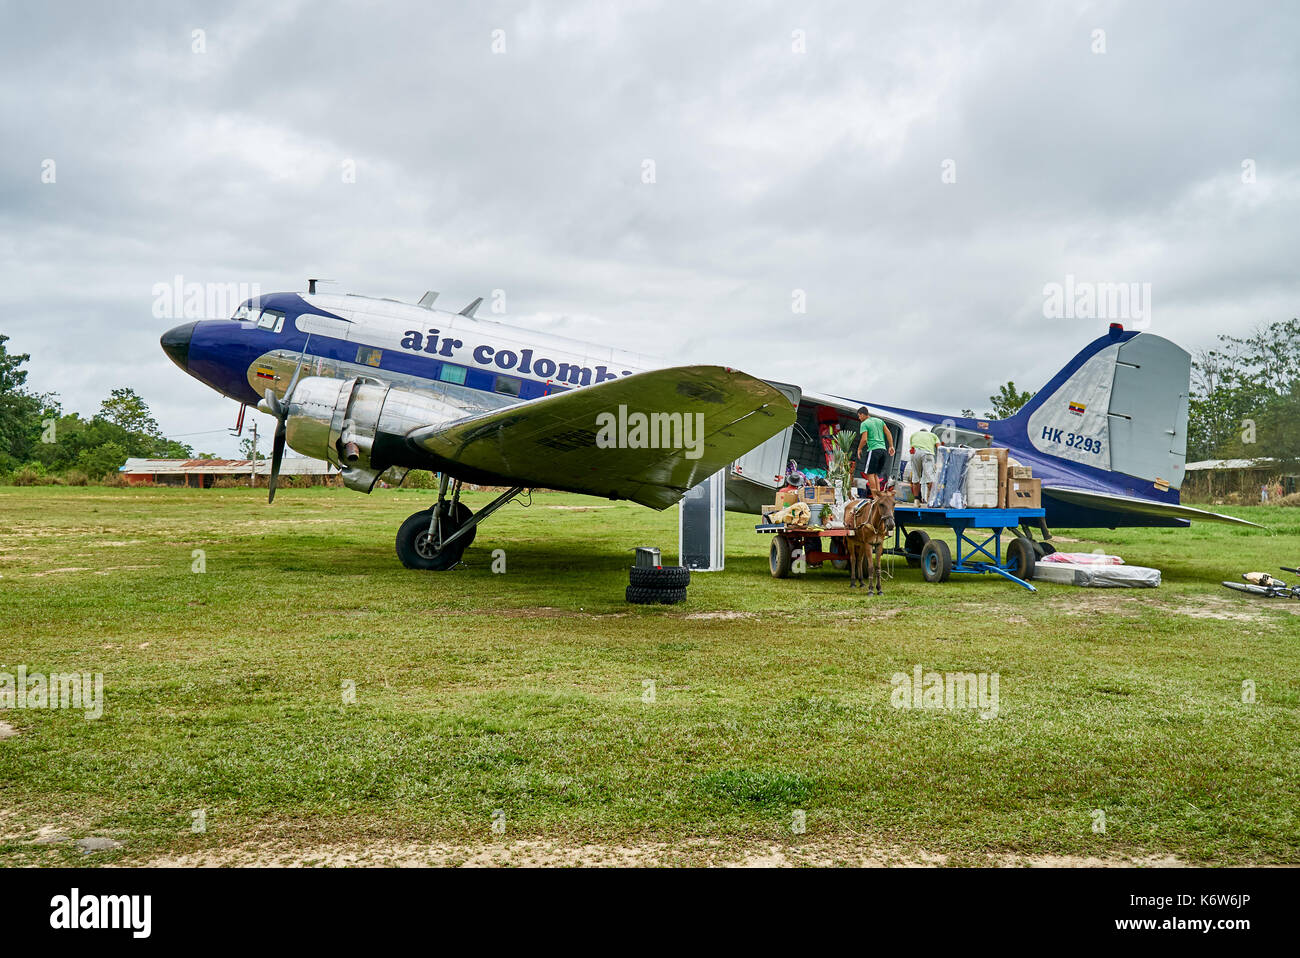 old Douglas DC-3 propeller plane loaded from donkey carriage , Serrania de la Macarena, La Macarena, Colombia, South - Stock Image